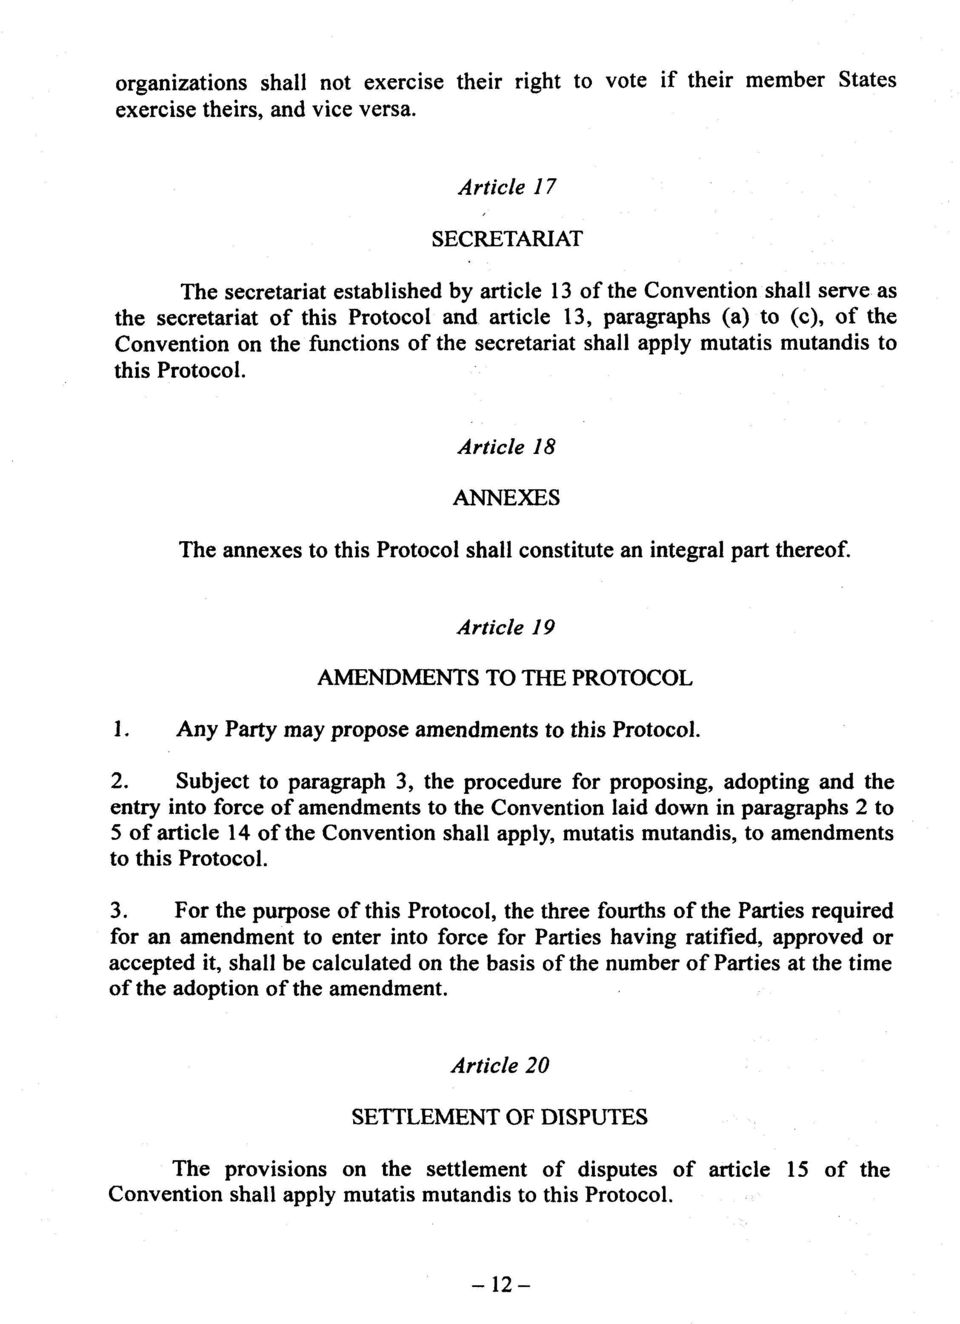 functions of the secretariat shall apply mutatis mutandis to this Protocol. Article 18 ANNEXES The annexes to this Protocol shall constitute an integral part thereof.